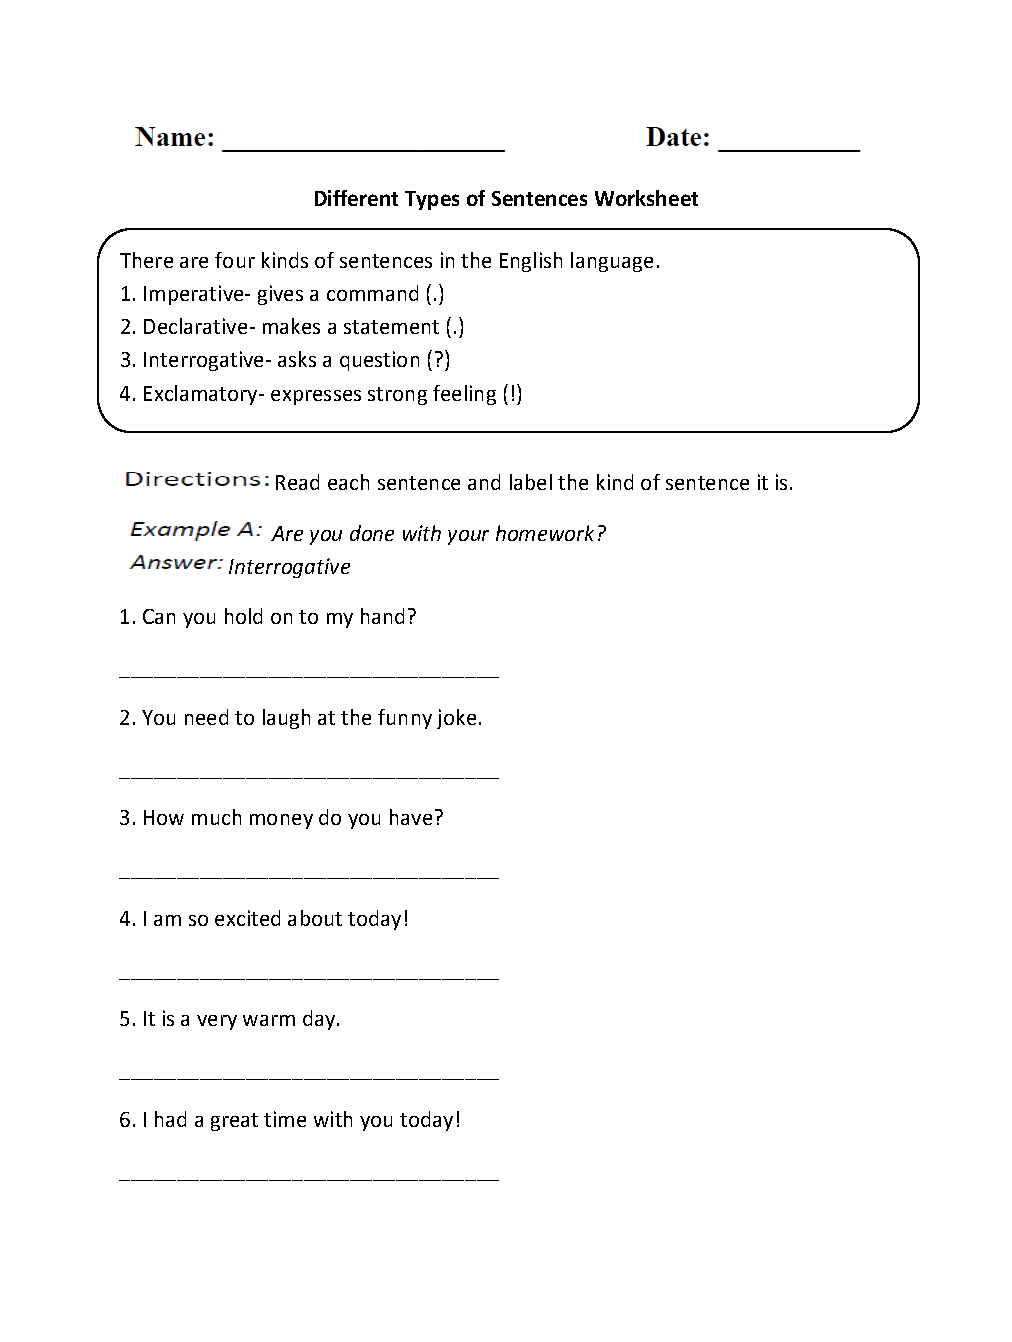 Worksheet Types Of Sentences Worksheets sentences worksheets types of different worksheet